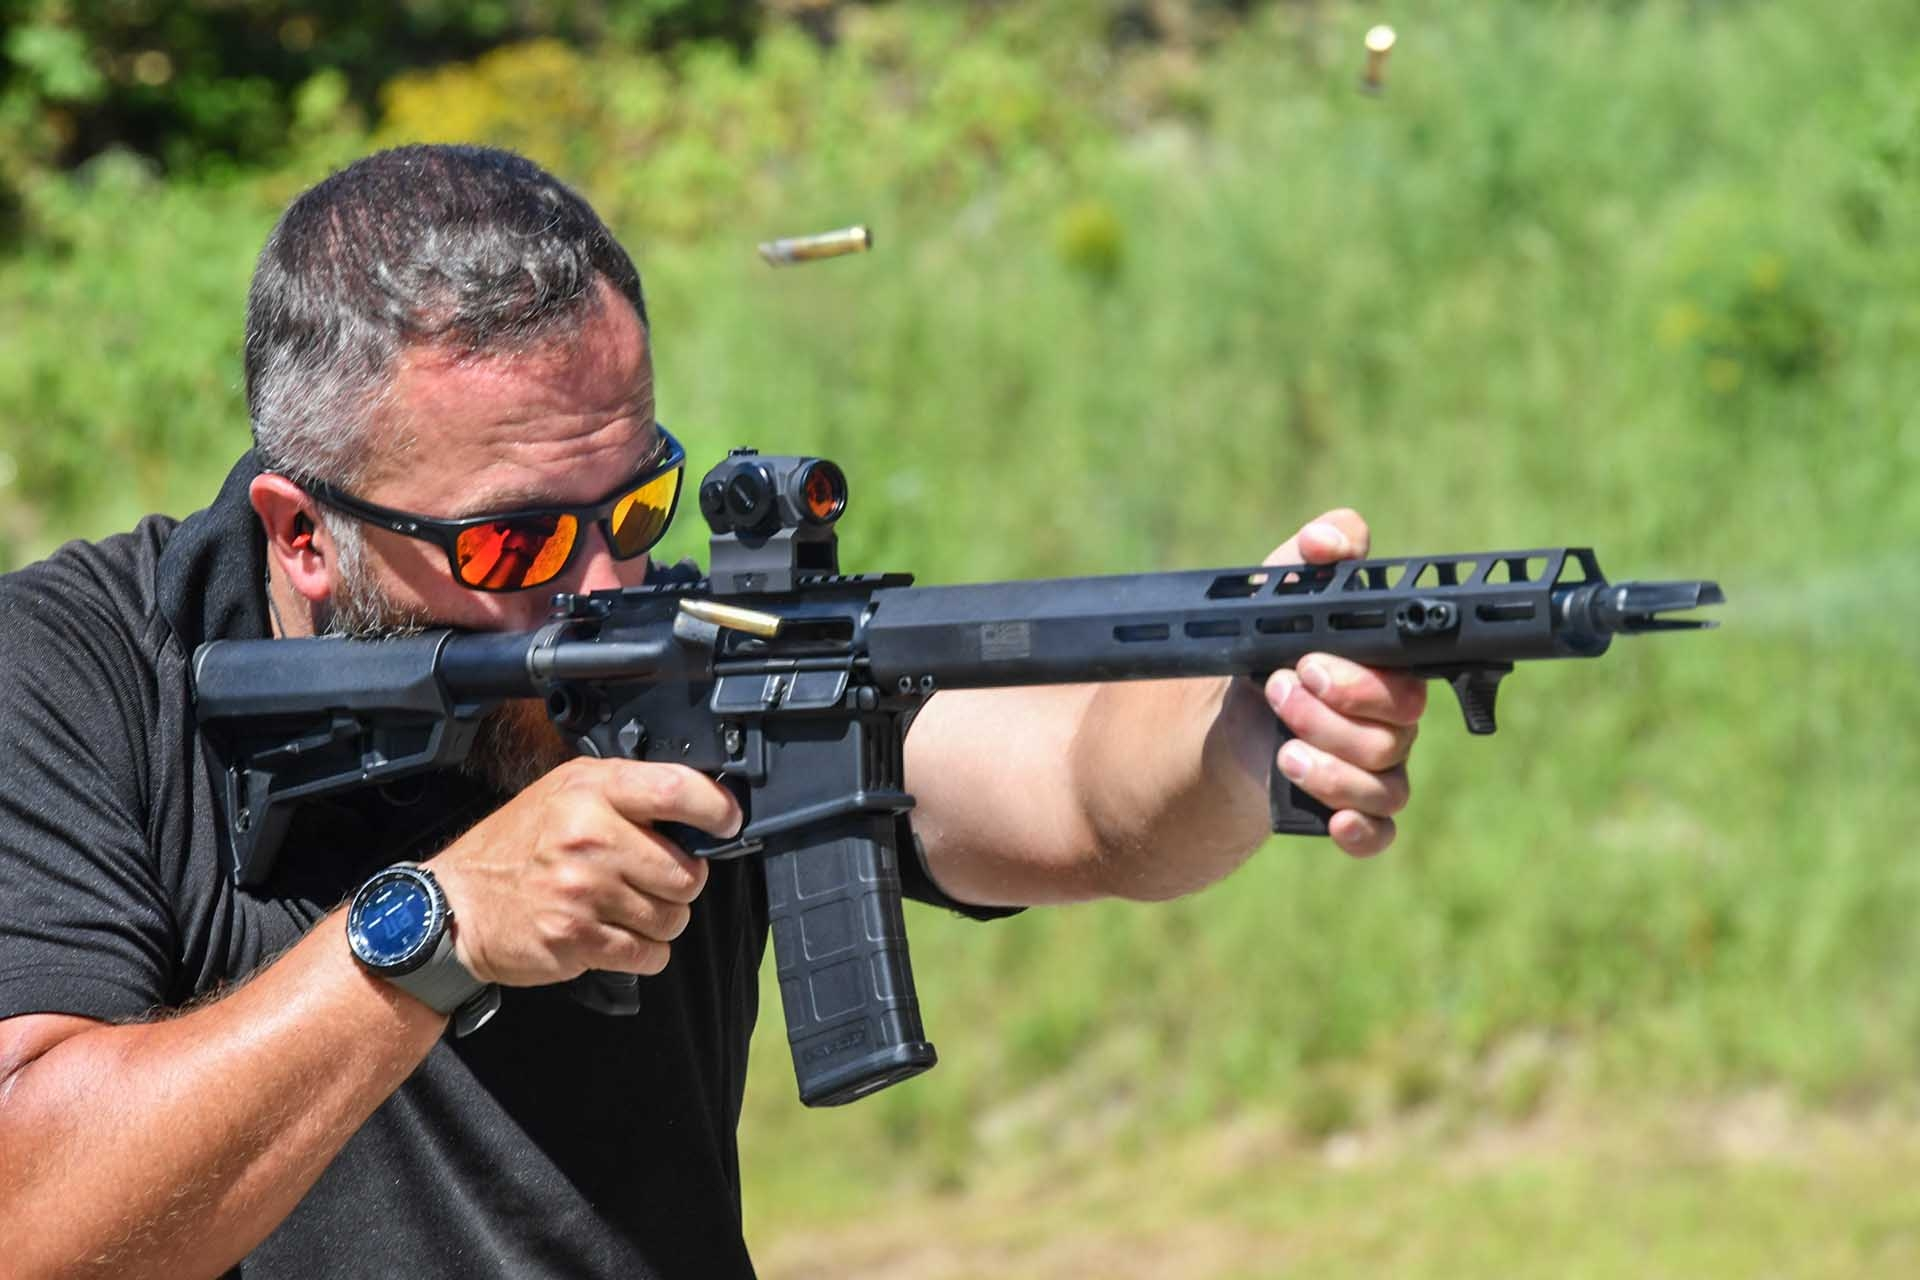 SIG Sauer M400 TREAD during the test